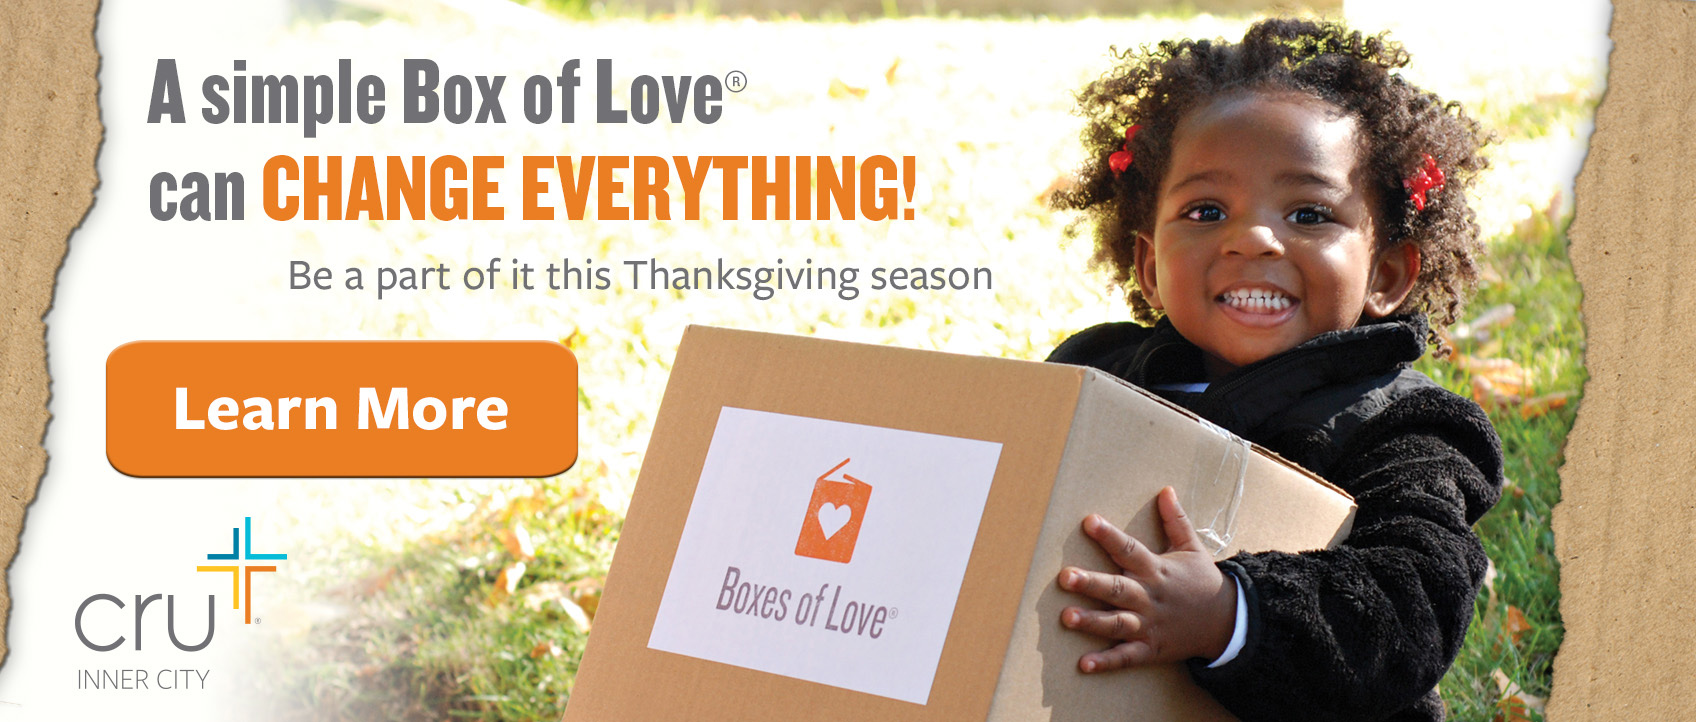 Give to Boxes of Love®